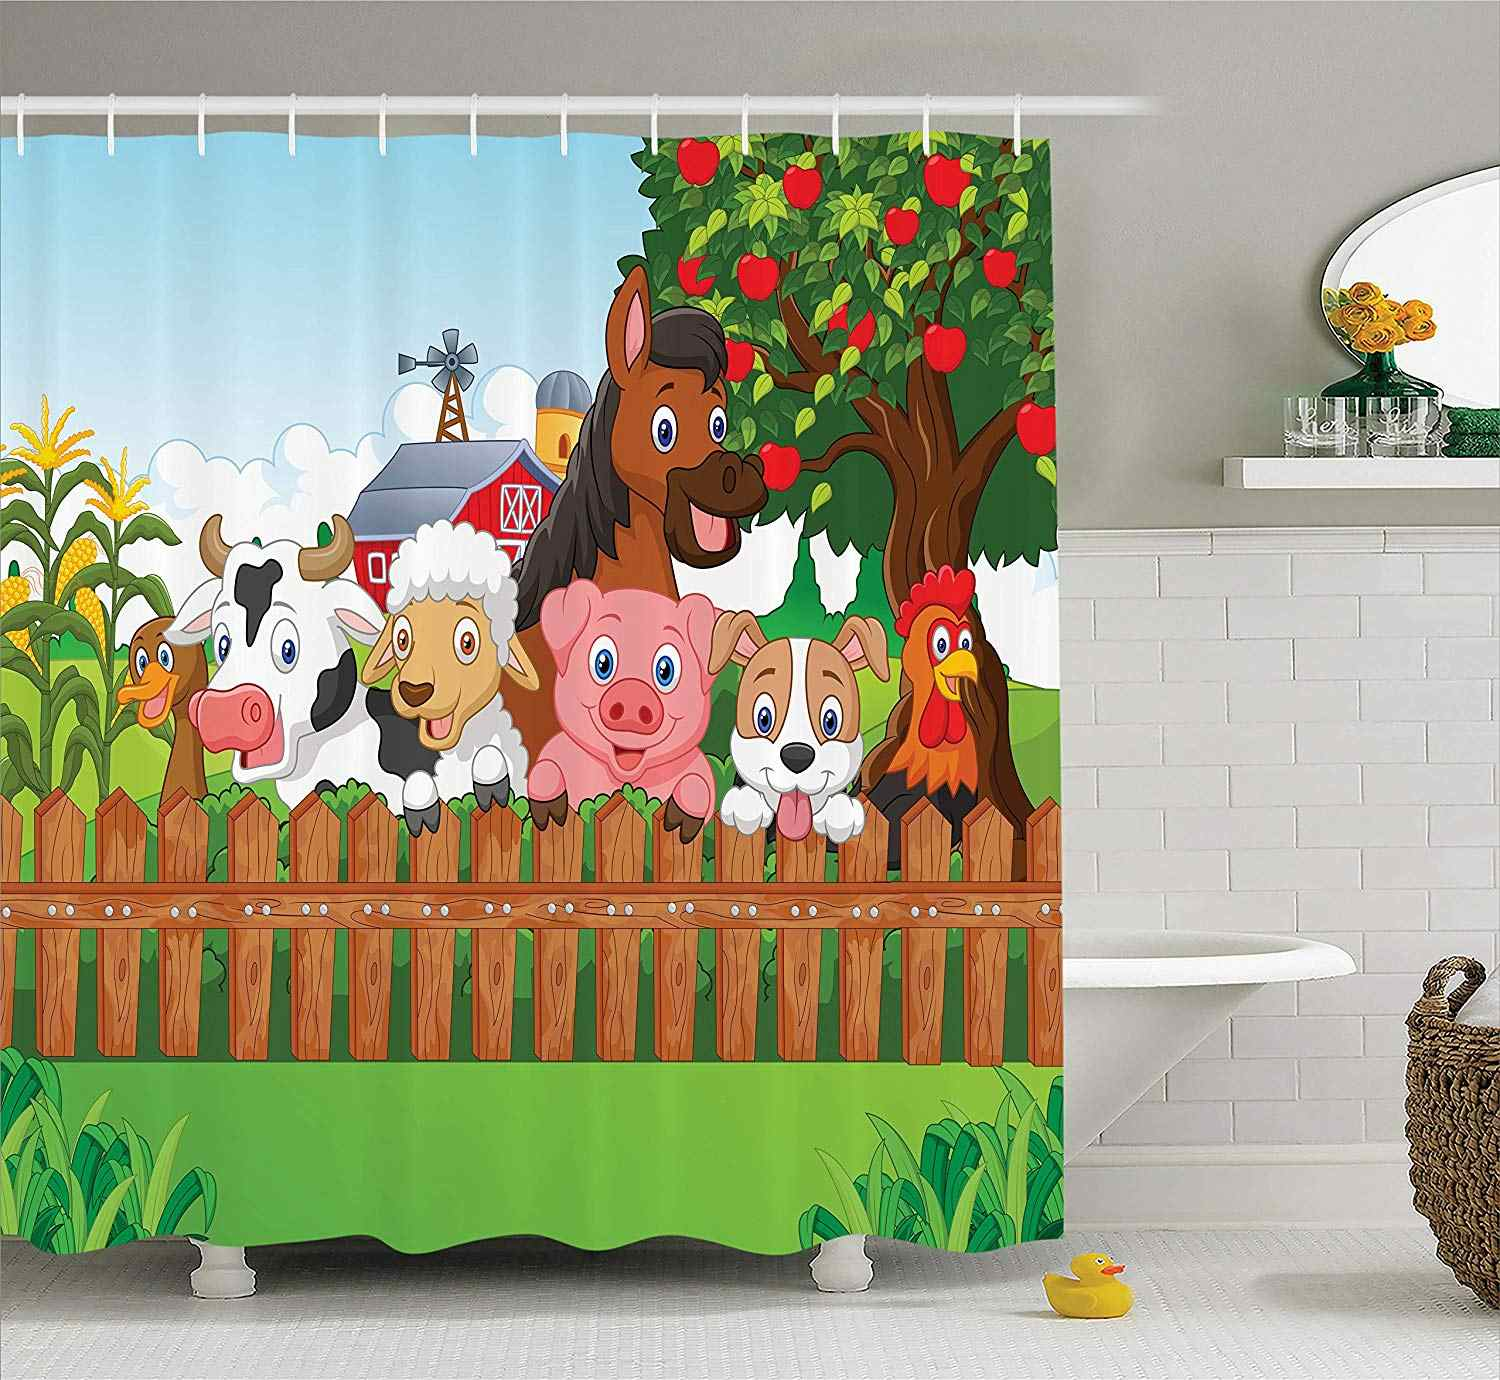 Cartoon Shower Curtain Collection of Cute Farm Animals on the Fence Mascots with Dog Cow Horse Fabric Bathroom Shower Curtain